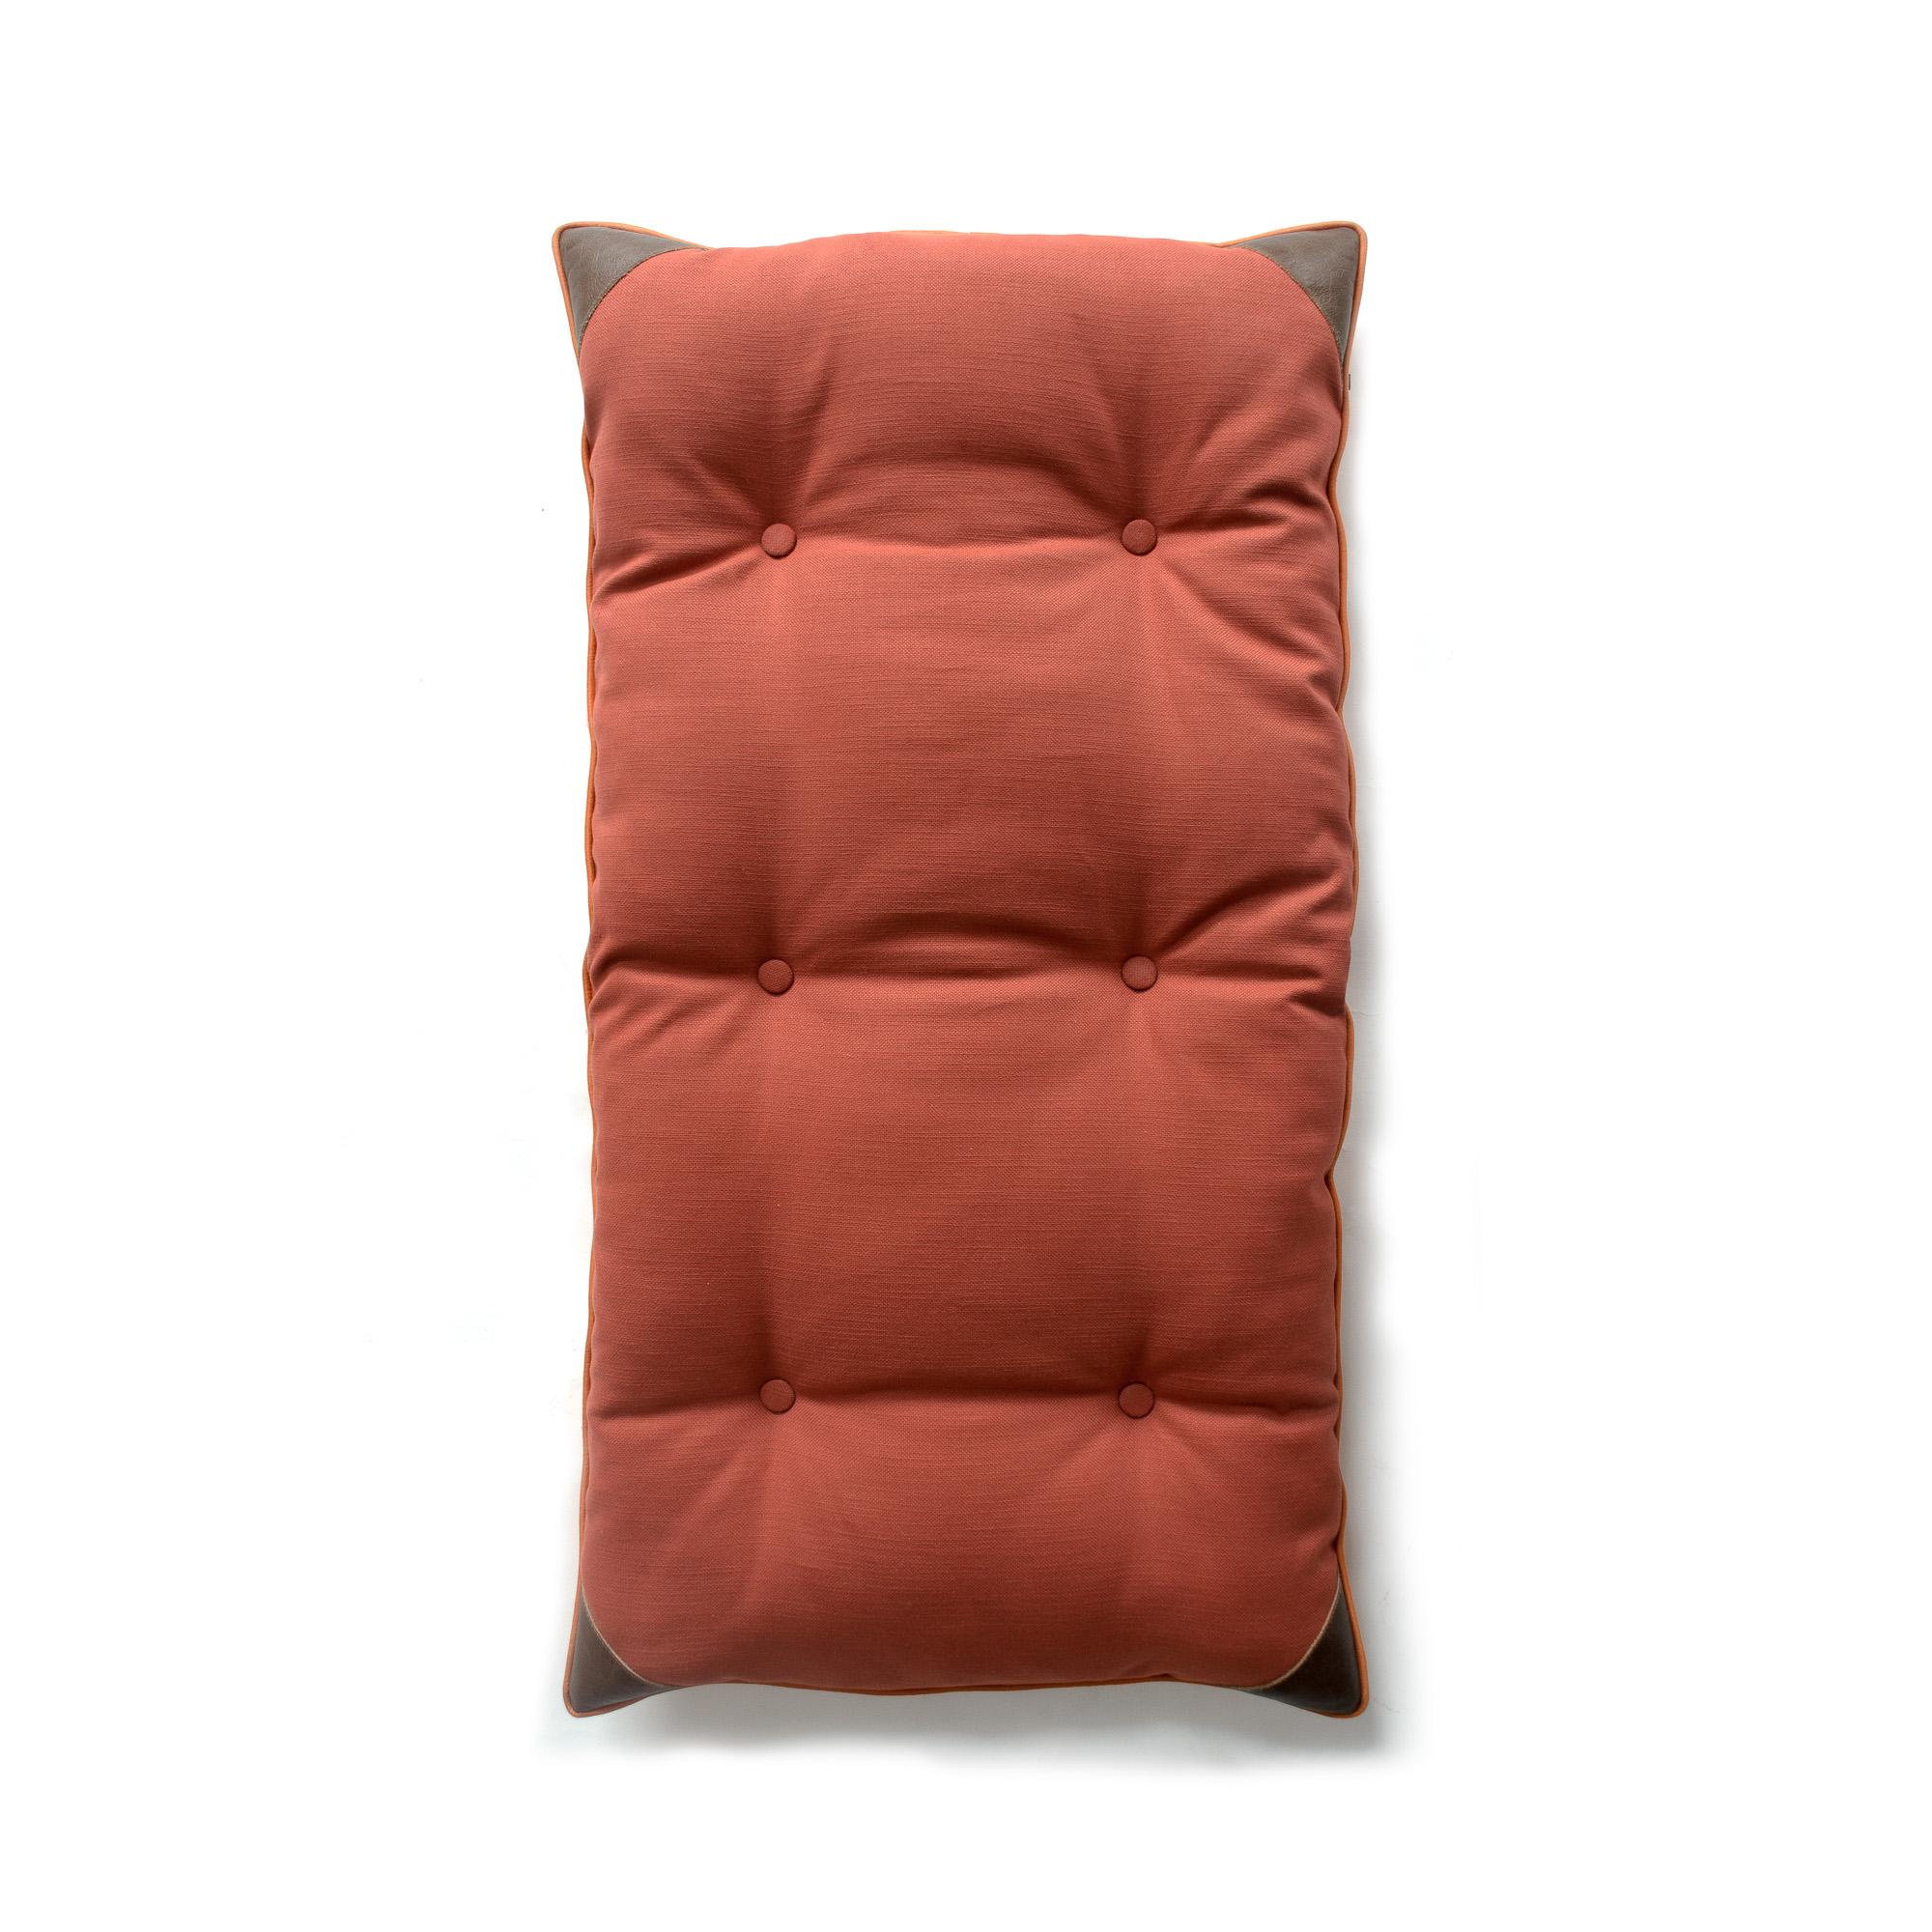 CHAIR TIE-UP CUSHION TANGERINE